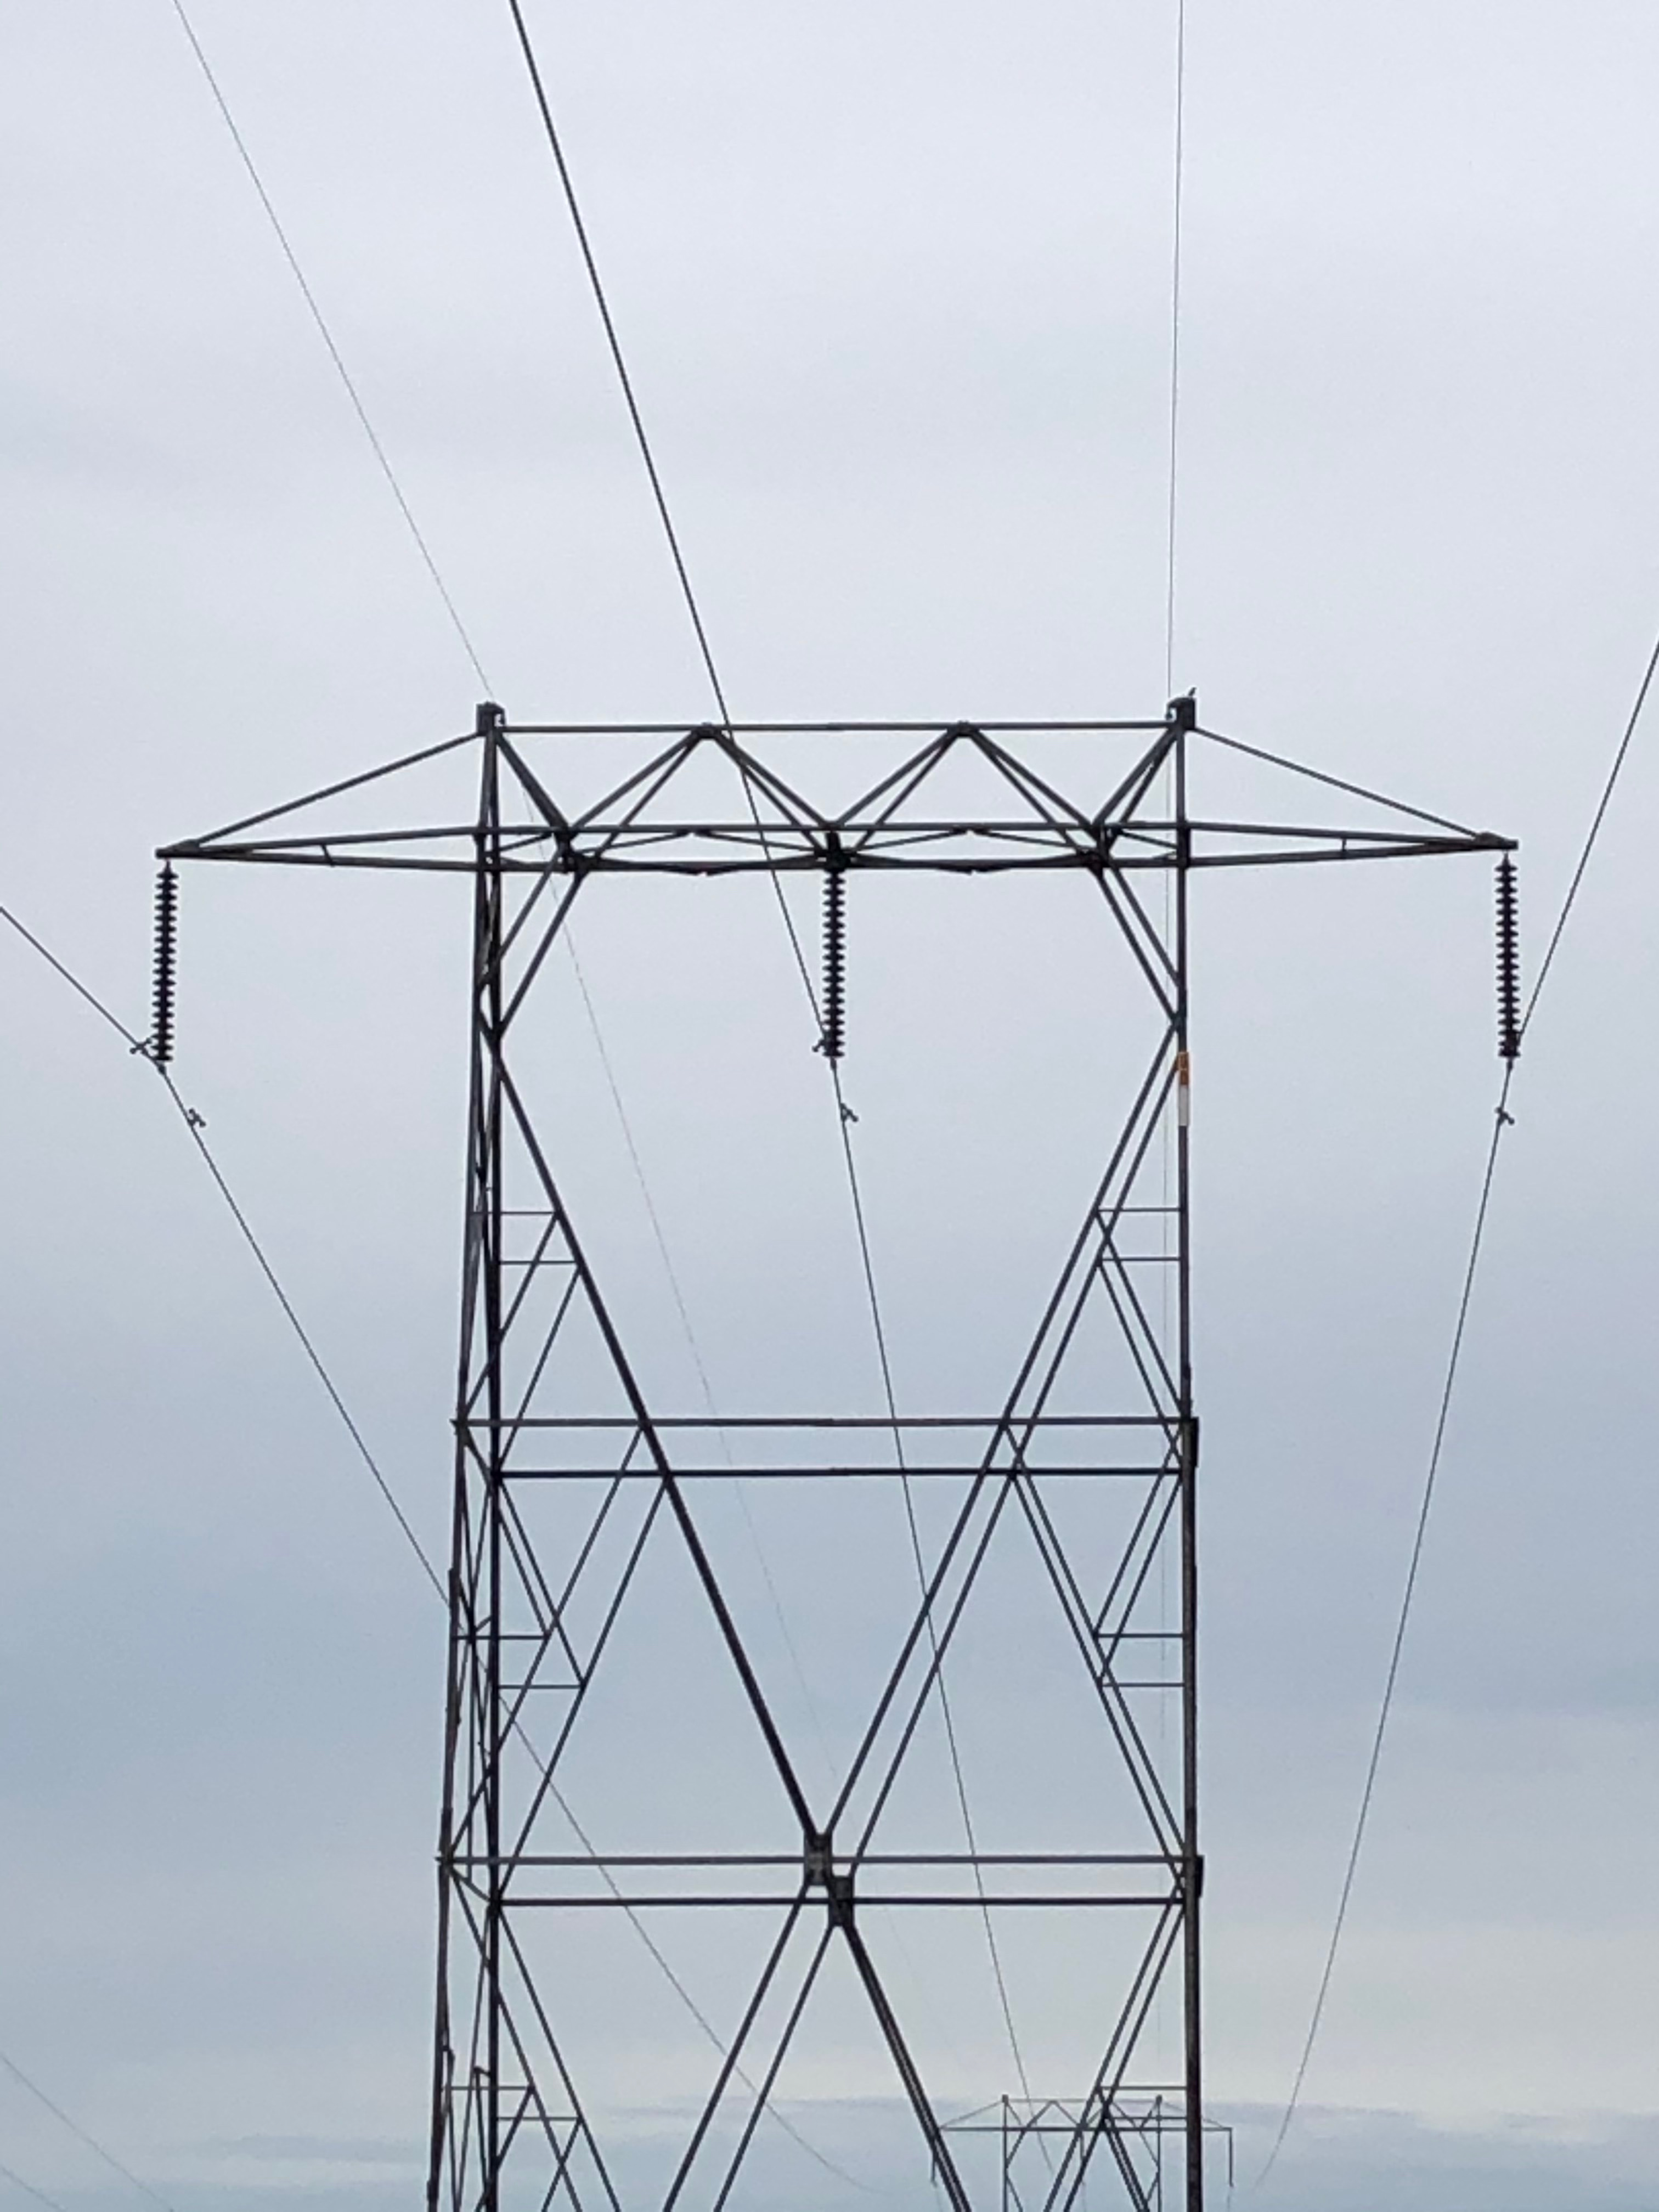 i find the heart in the power lines super cute